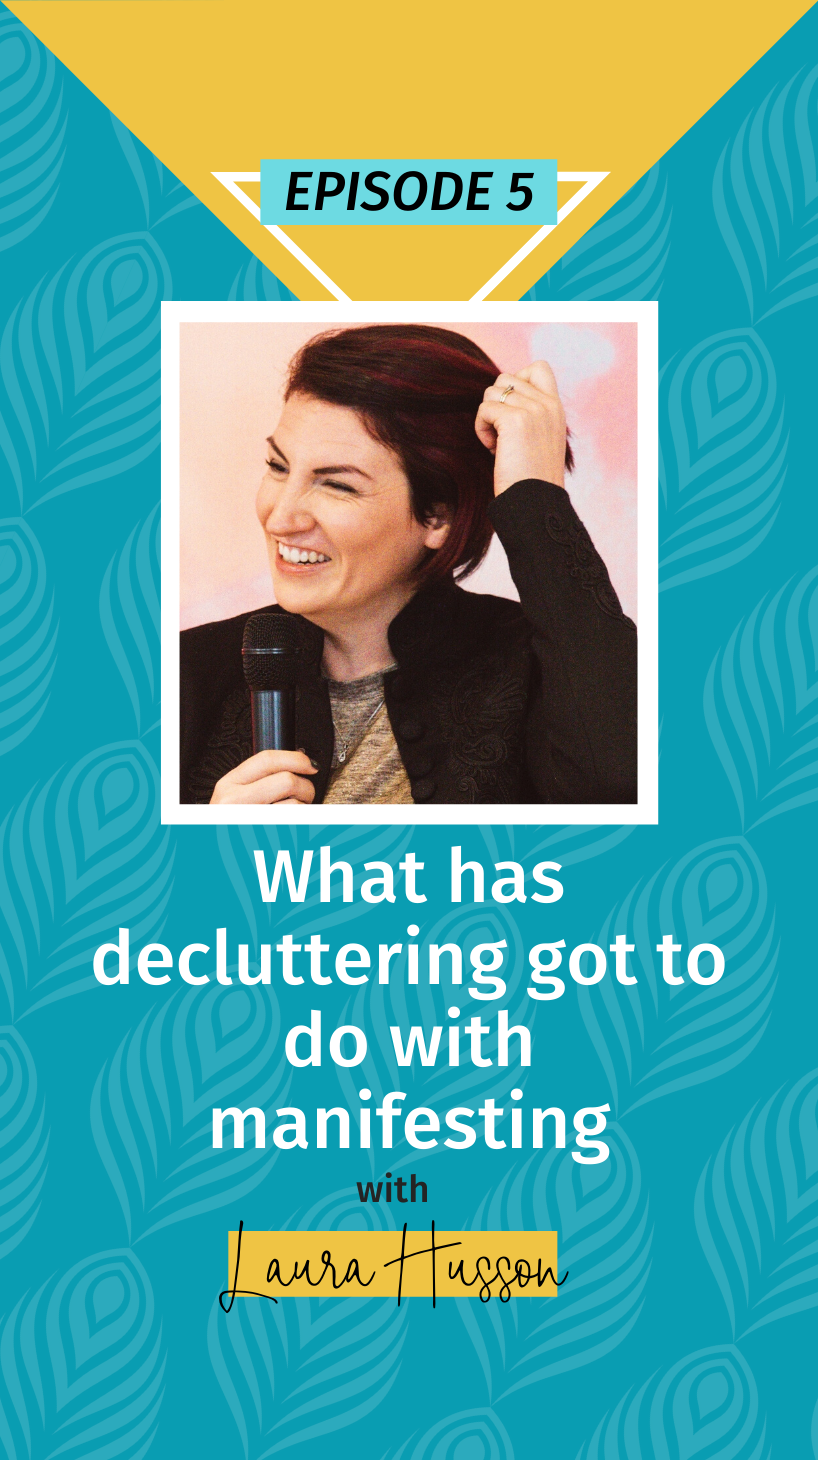 005 Making Babies + Making Bank: What has decluttering got to do with manifesting, with Laura Husson